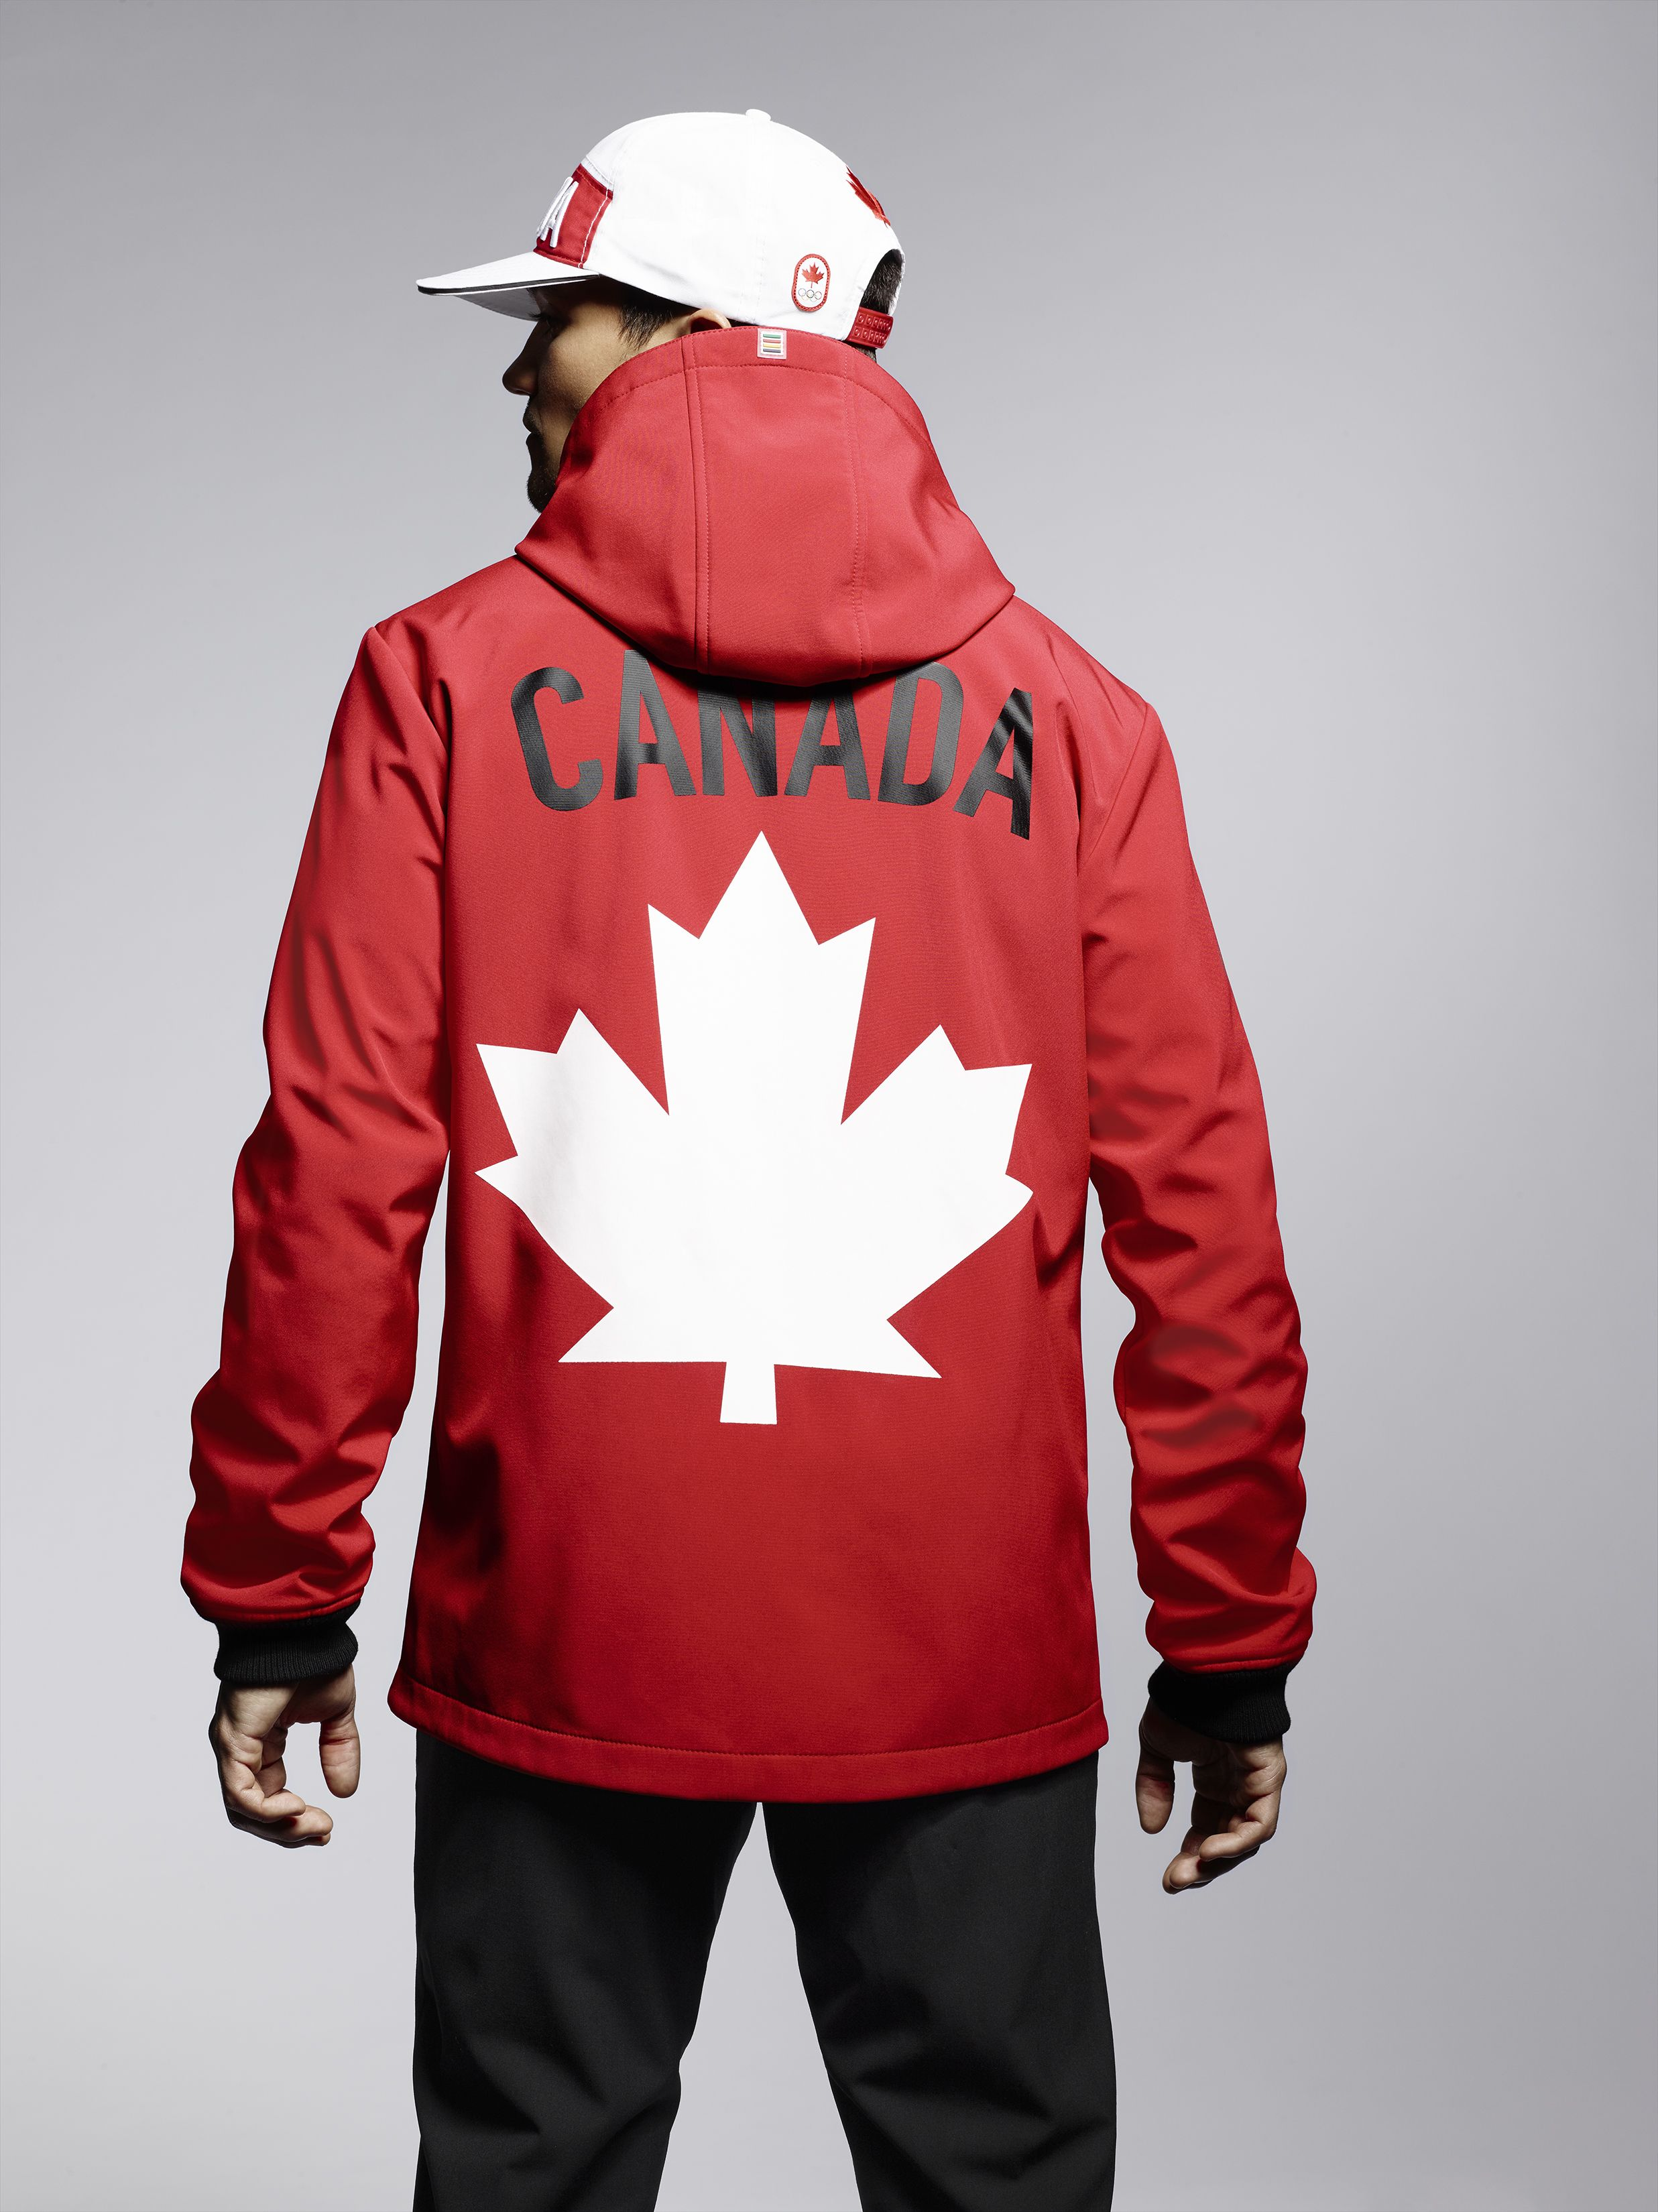 100% quality new appearance super cheap The Most Stylish Uniforms from the Rio Games, Canadian ...